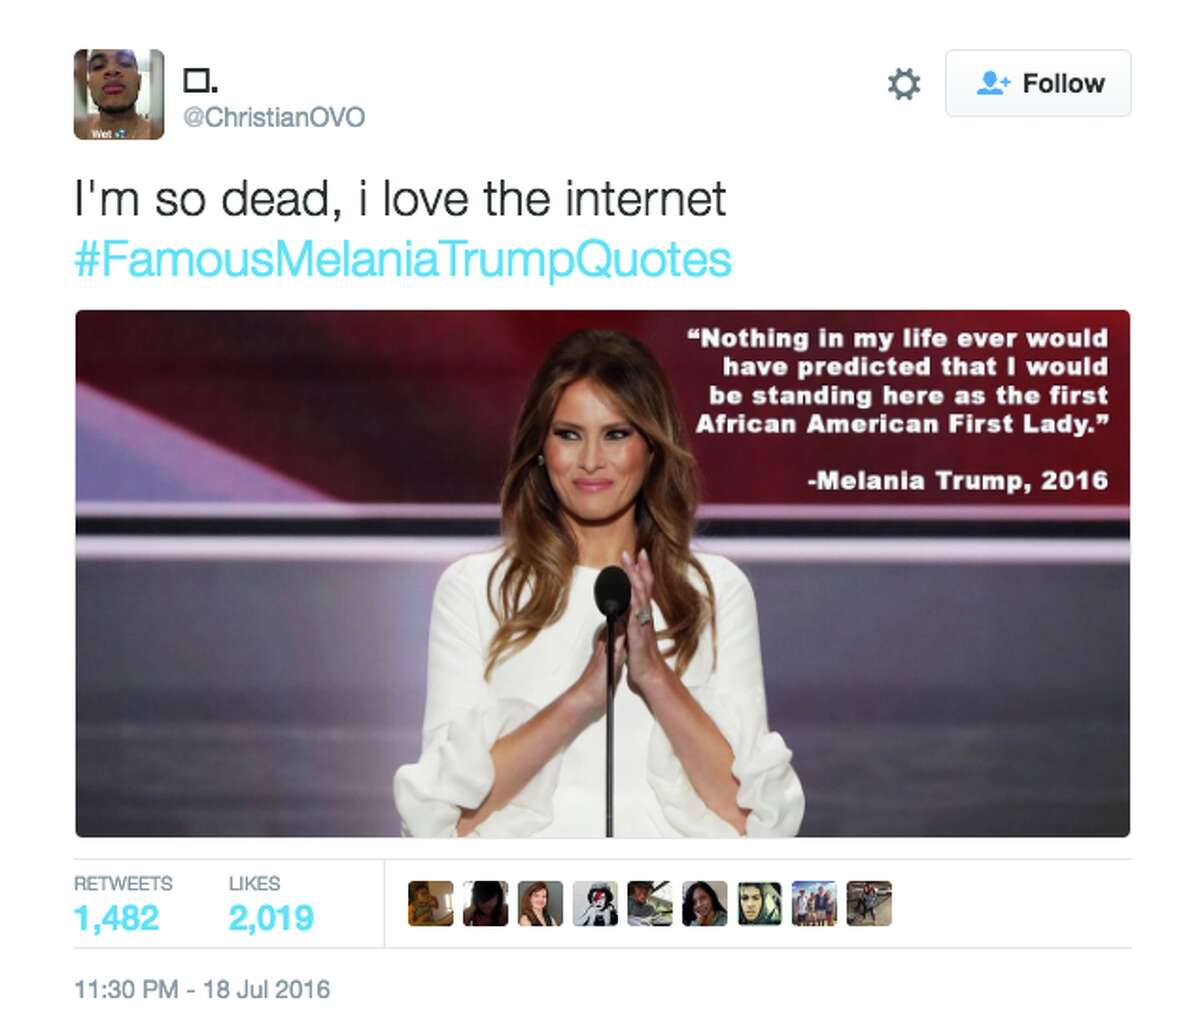 The internet mocked Melania Trump after her RNC address was found to be suspiciously similar to an old speech of Michelle Obama's.